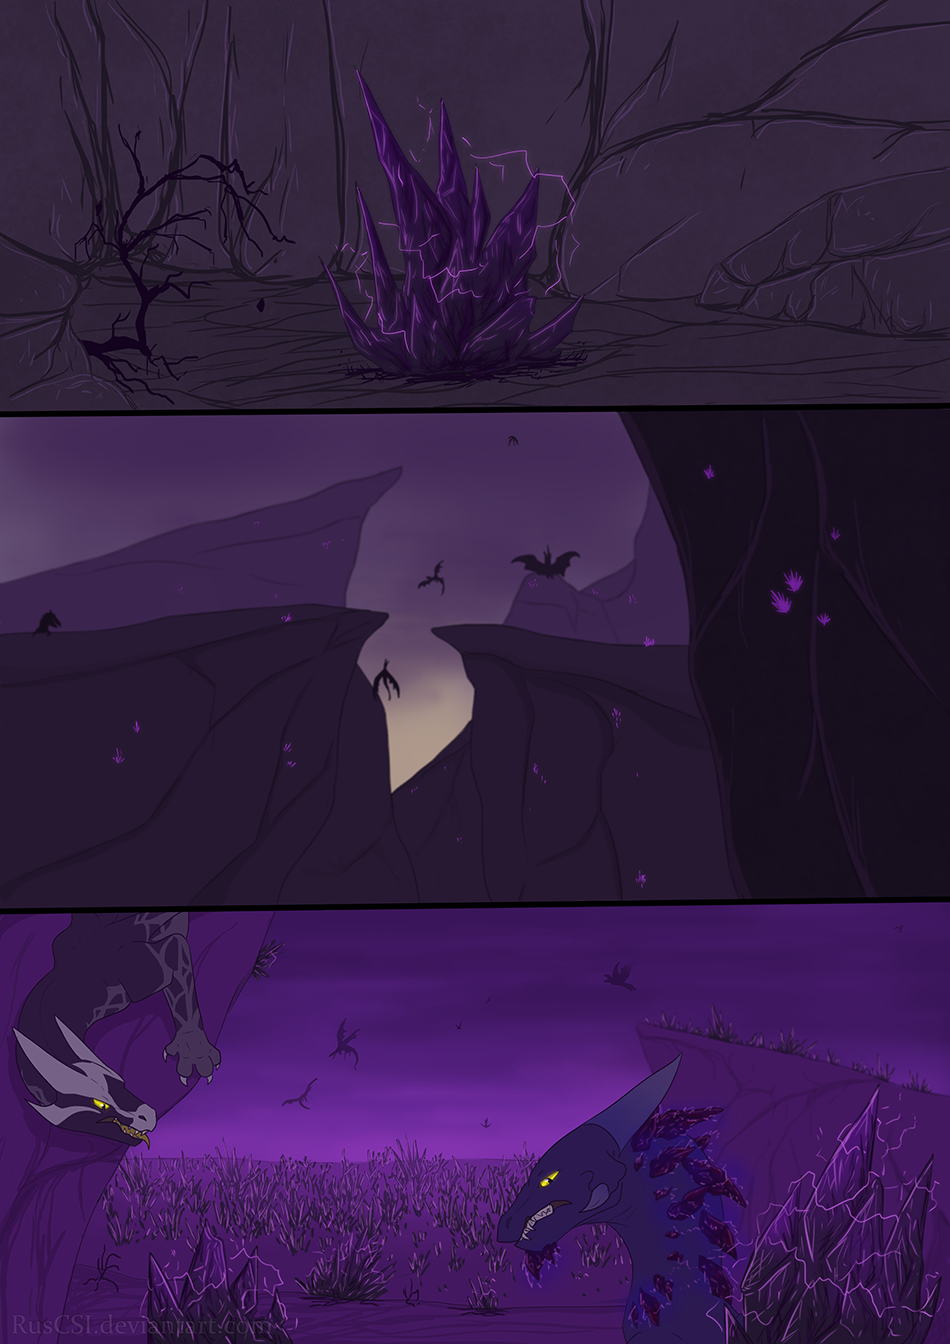 Courage of the cowardly dragon - page 1